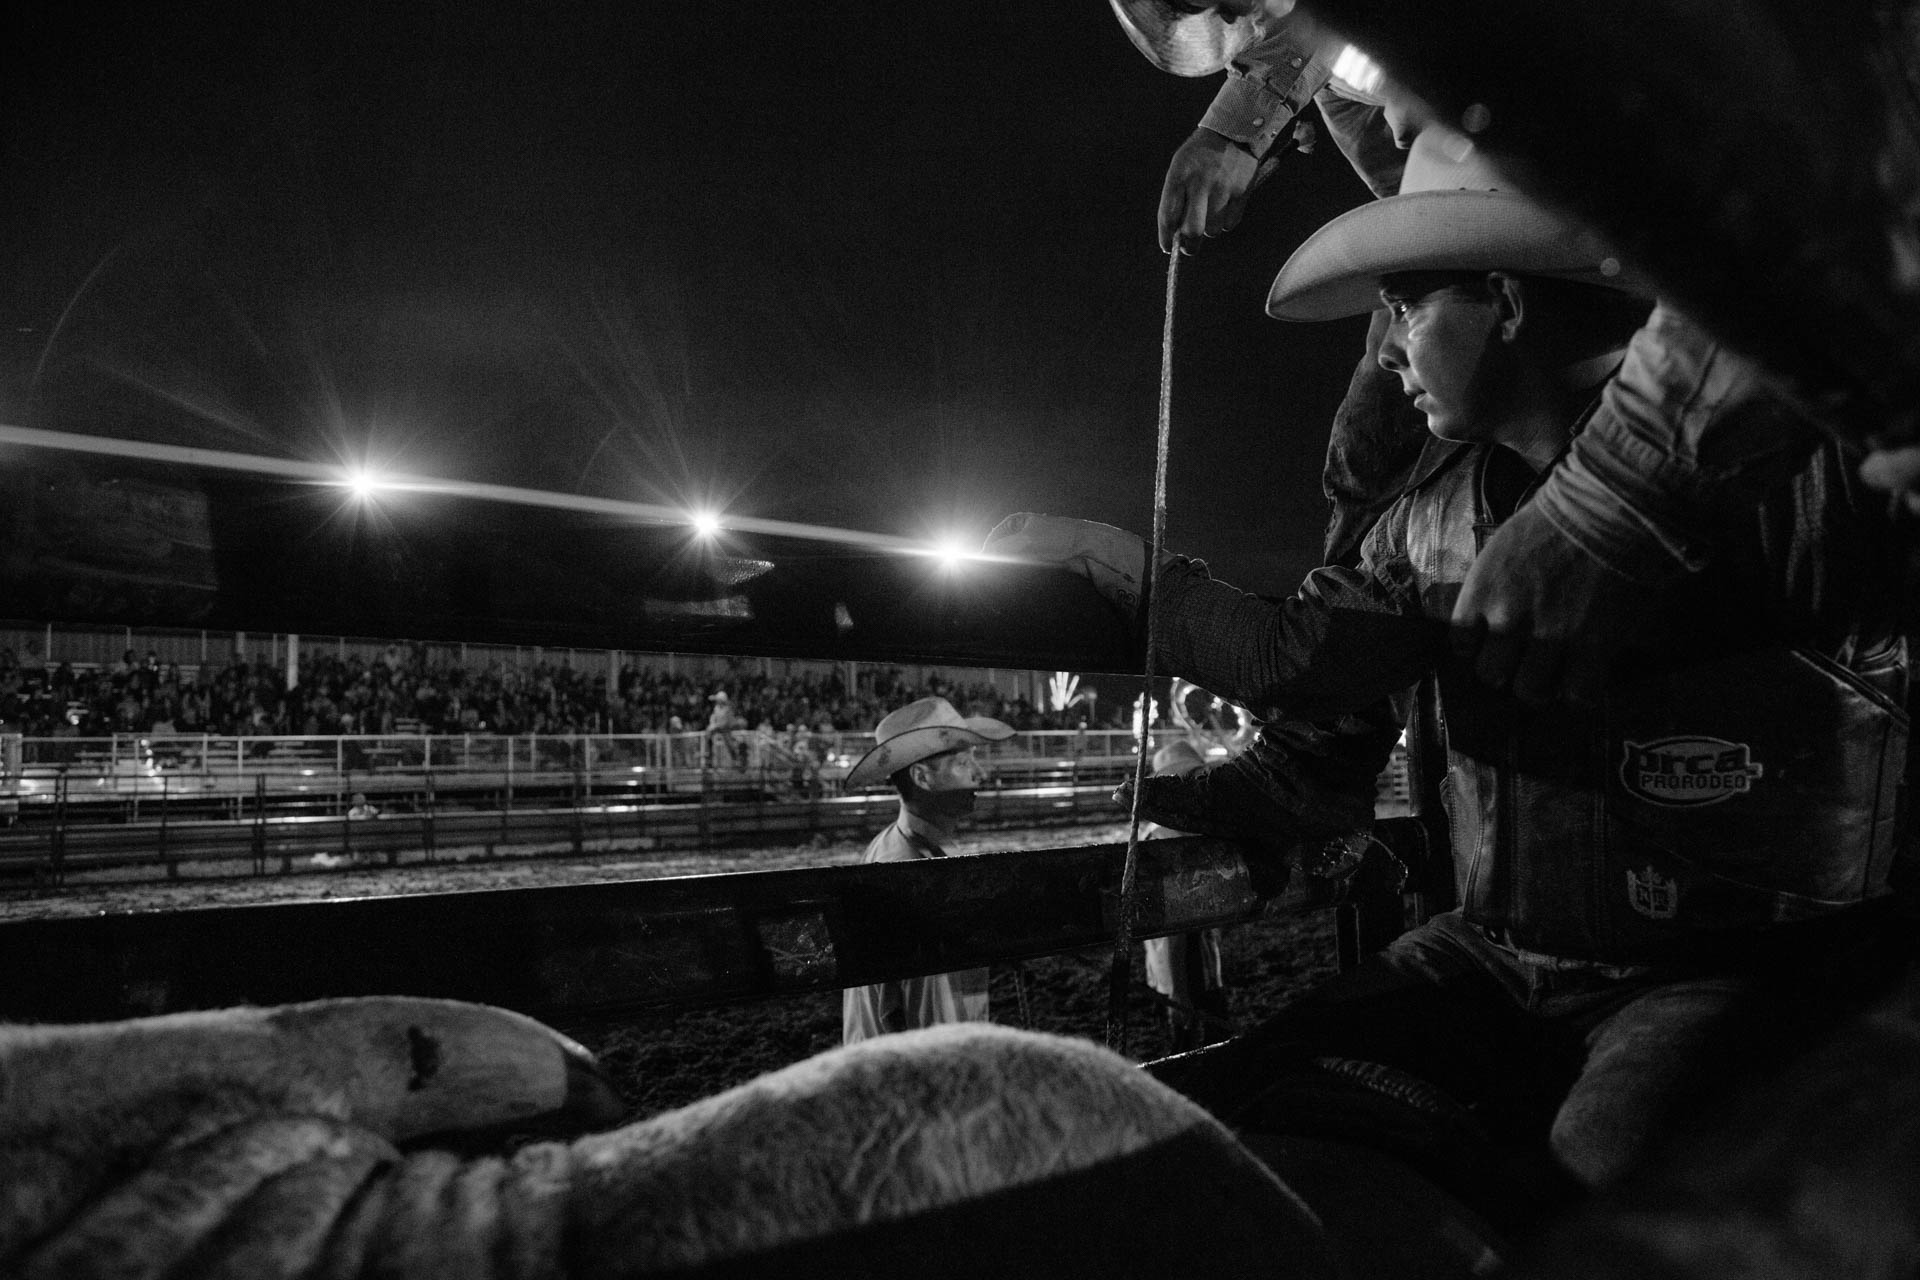 bull-rider-waits-his-turn-in-bull-chute-under-the-lights-prca-pro-rodeo-vest-a5333